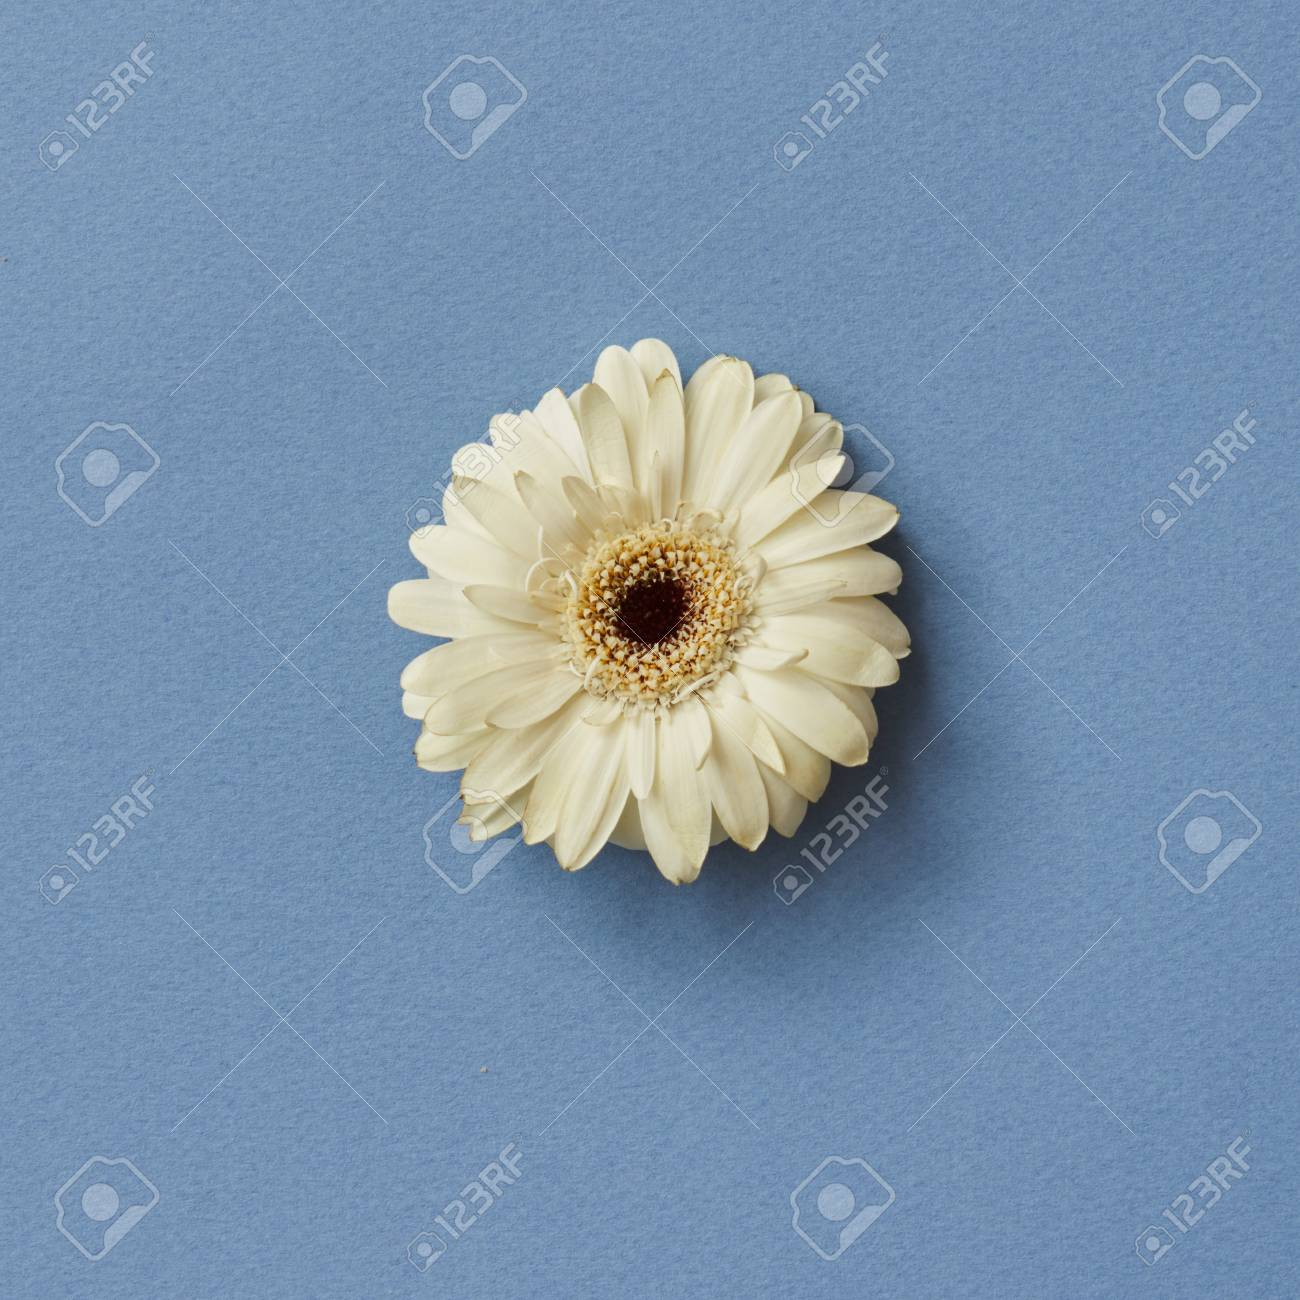 One White Gerbera Flower Isolated On A Blue Background Stock Photo